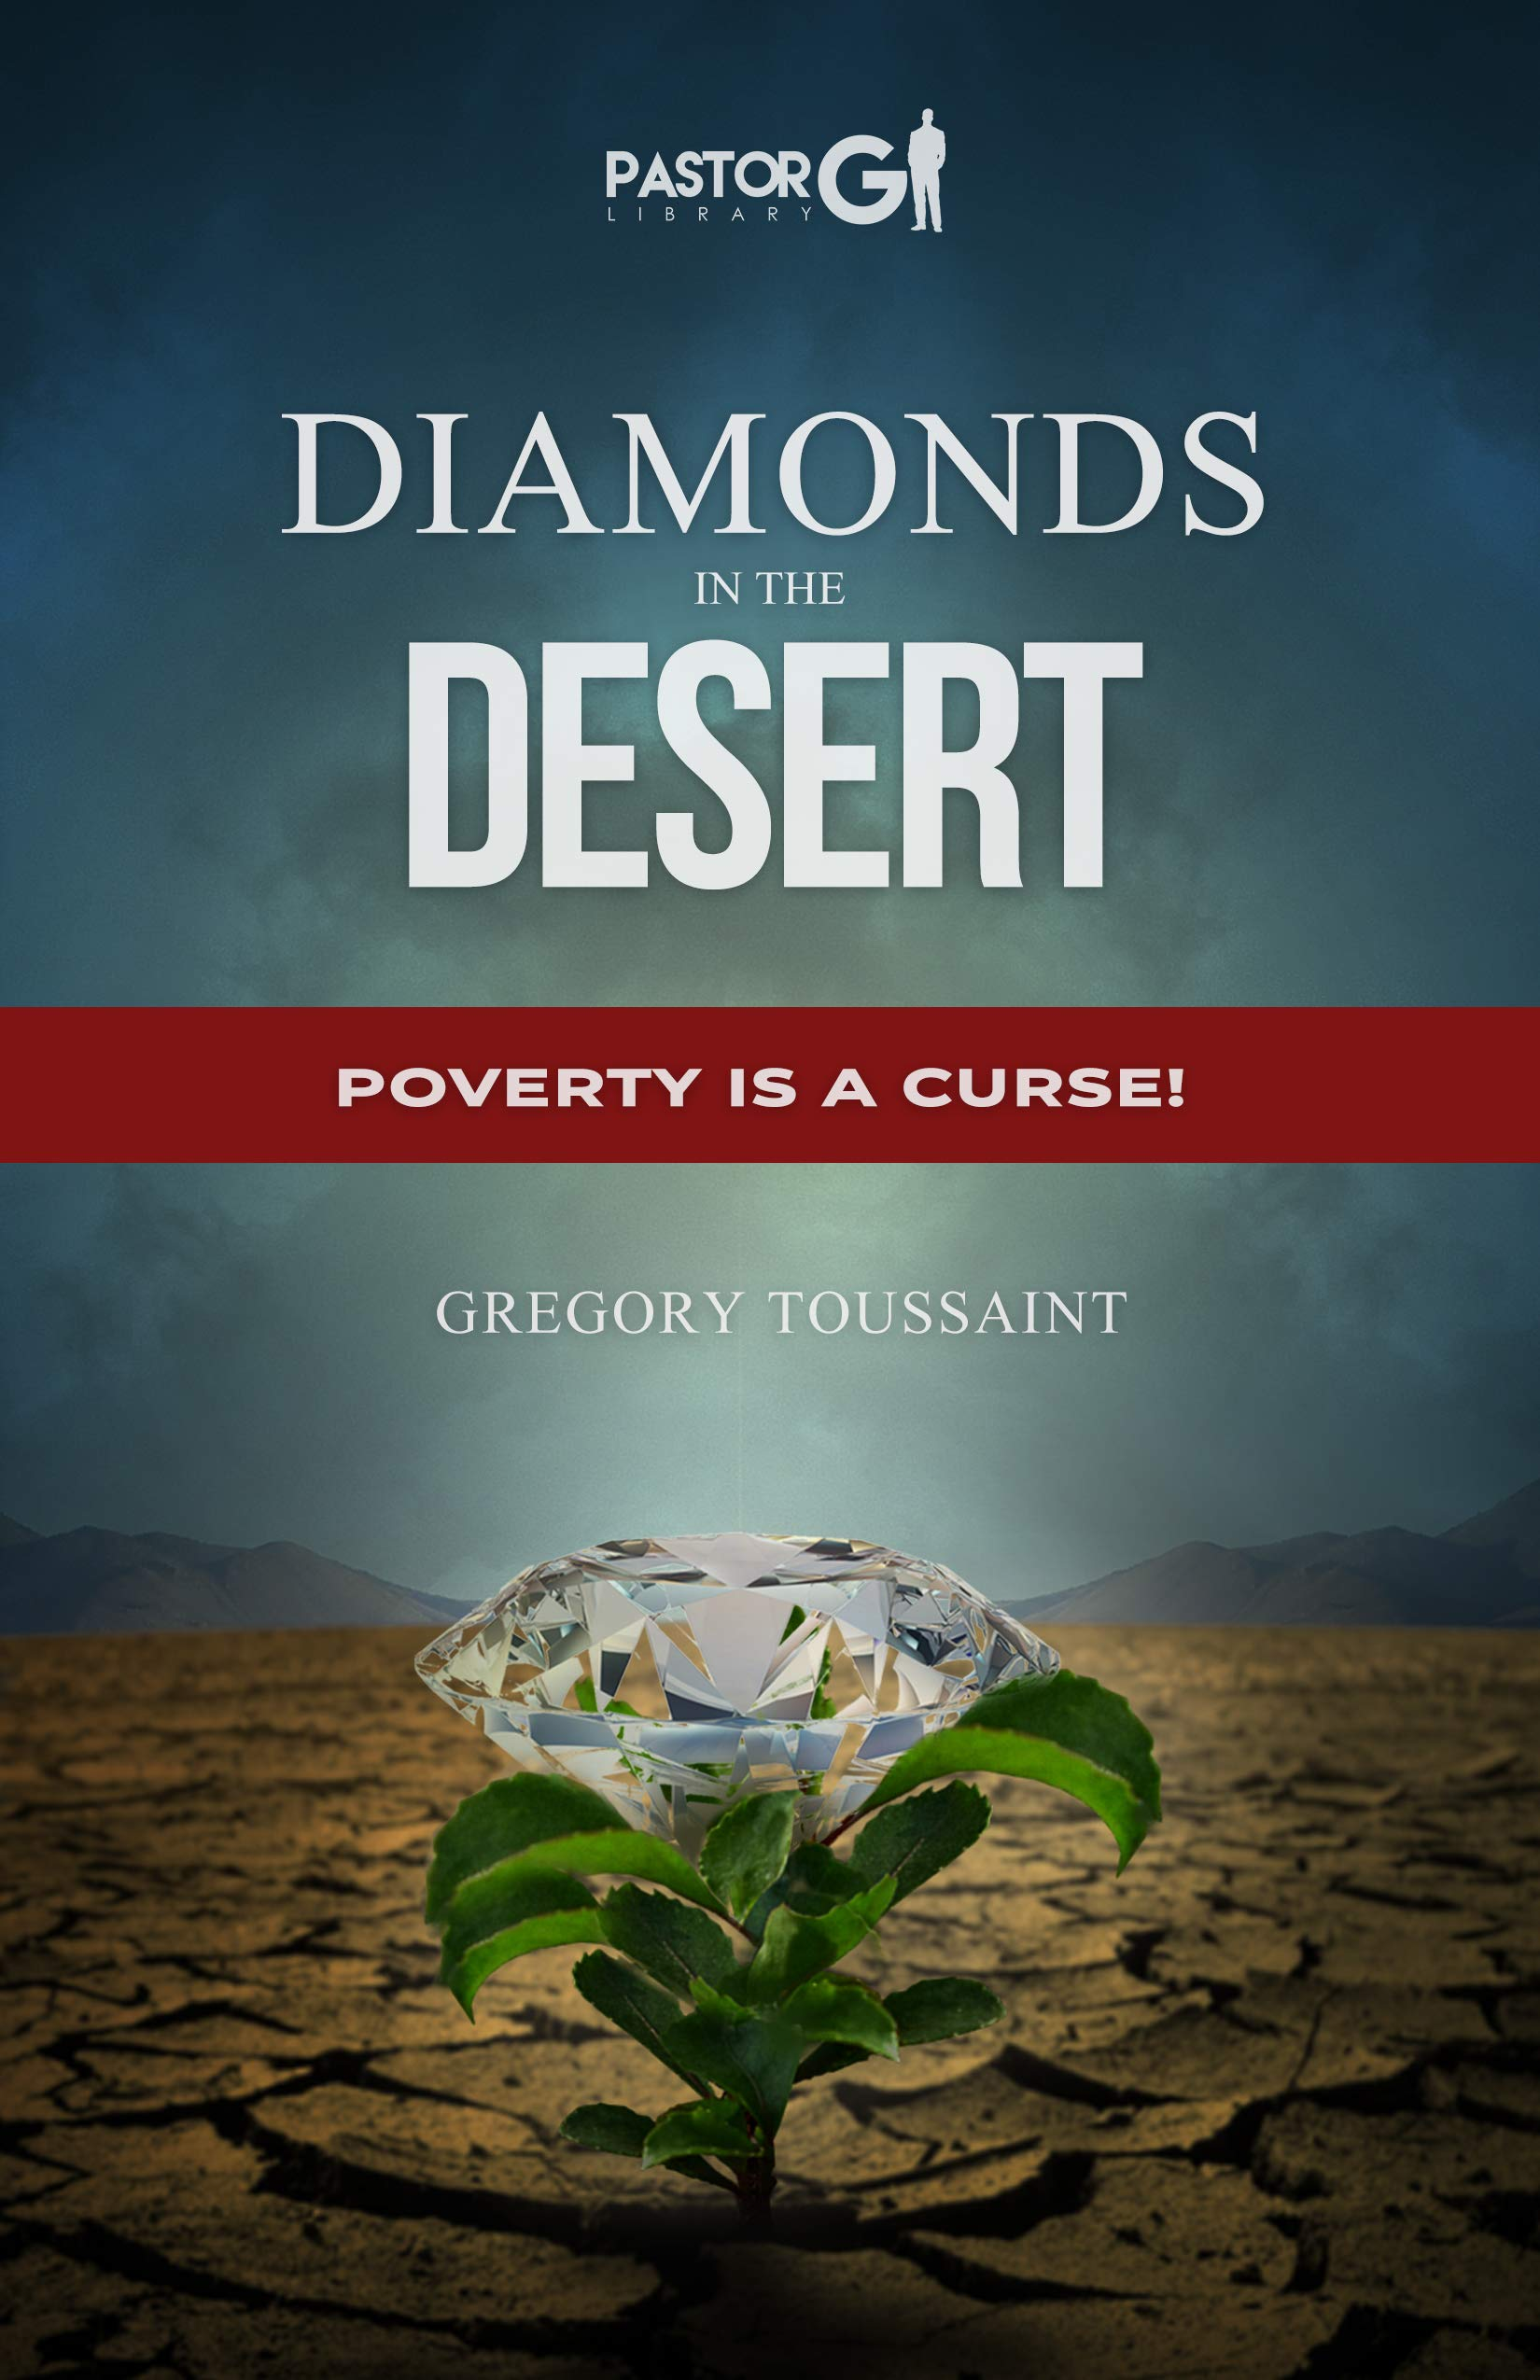 Diamonds in the Desert: Poverty is a Curse